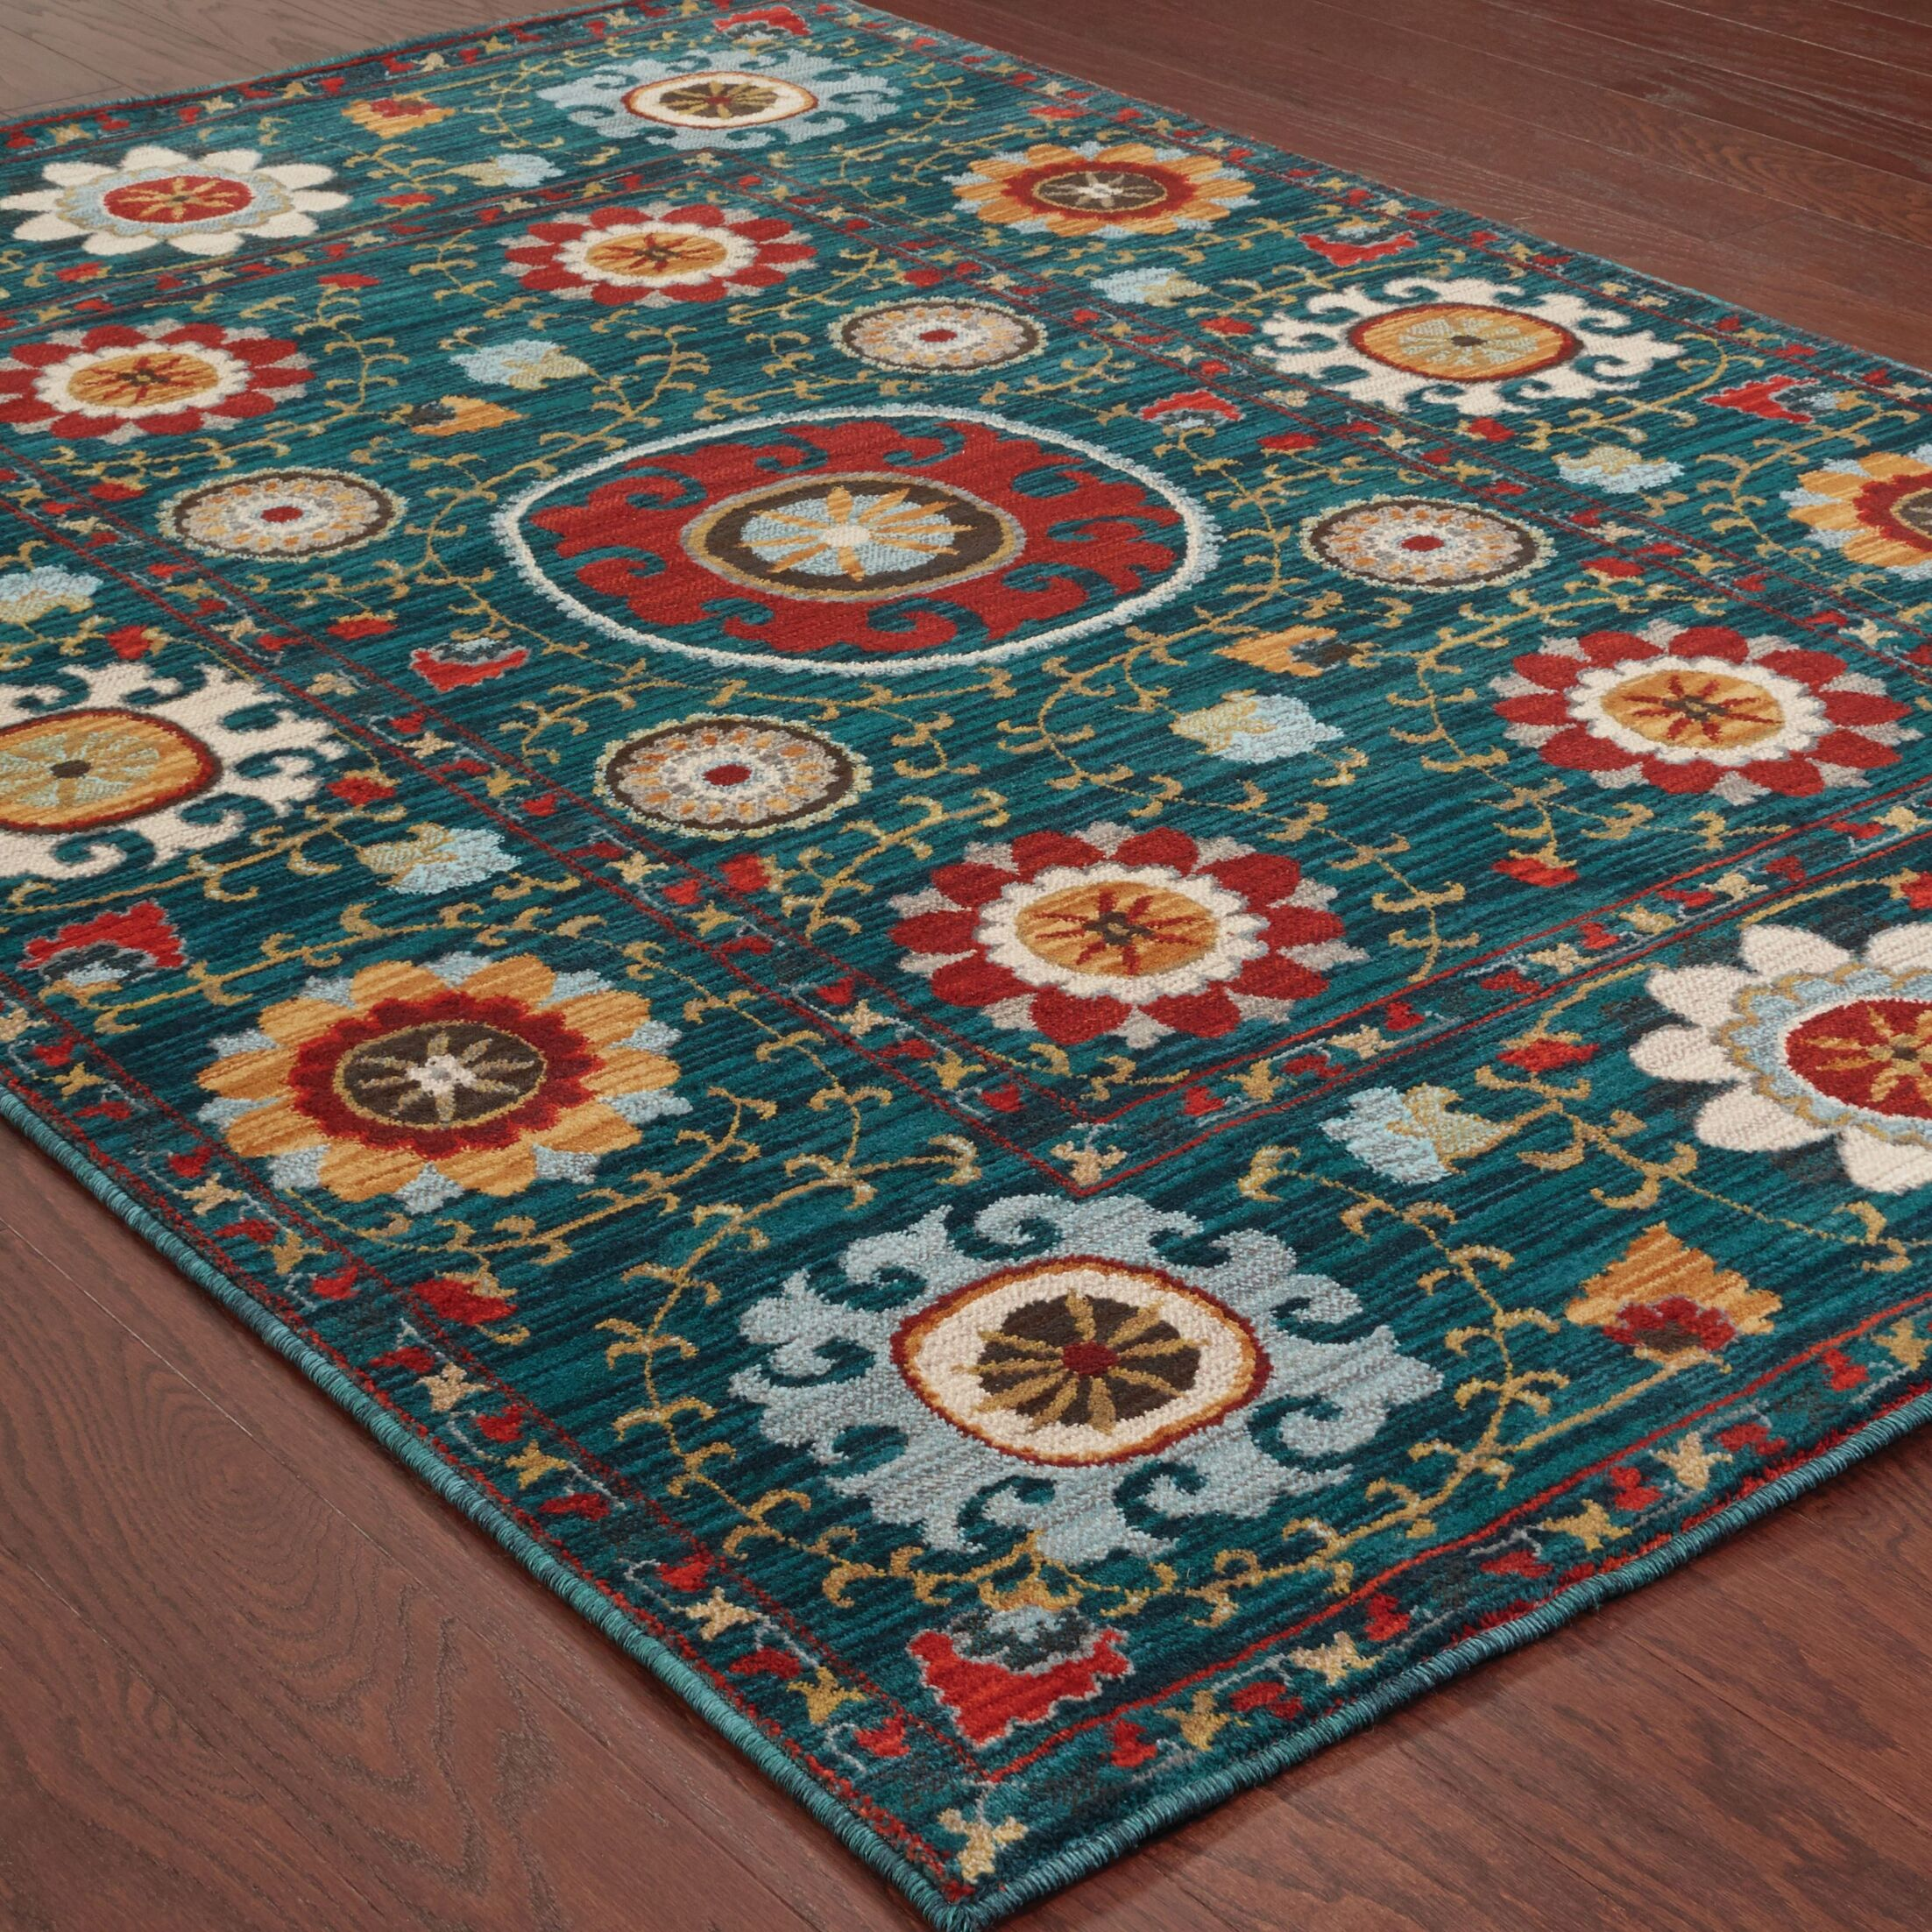 Herring Blue/Red Area Rug Rug Size: Rectangle 1'10